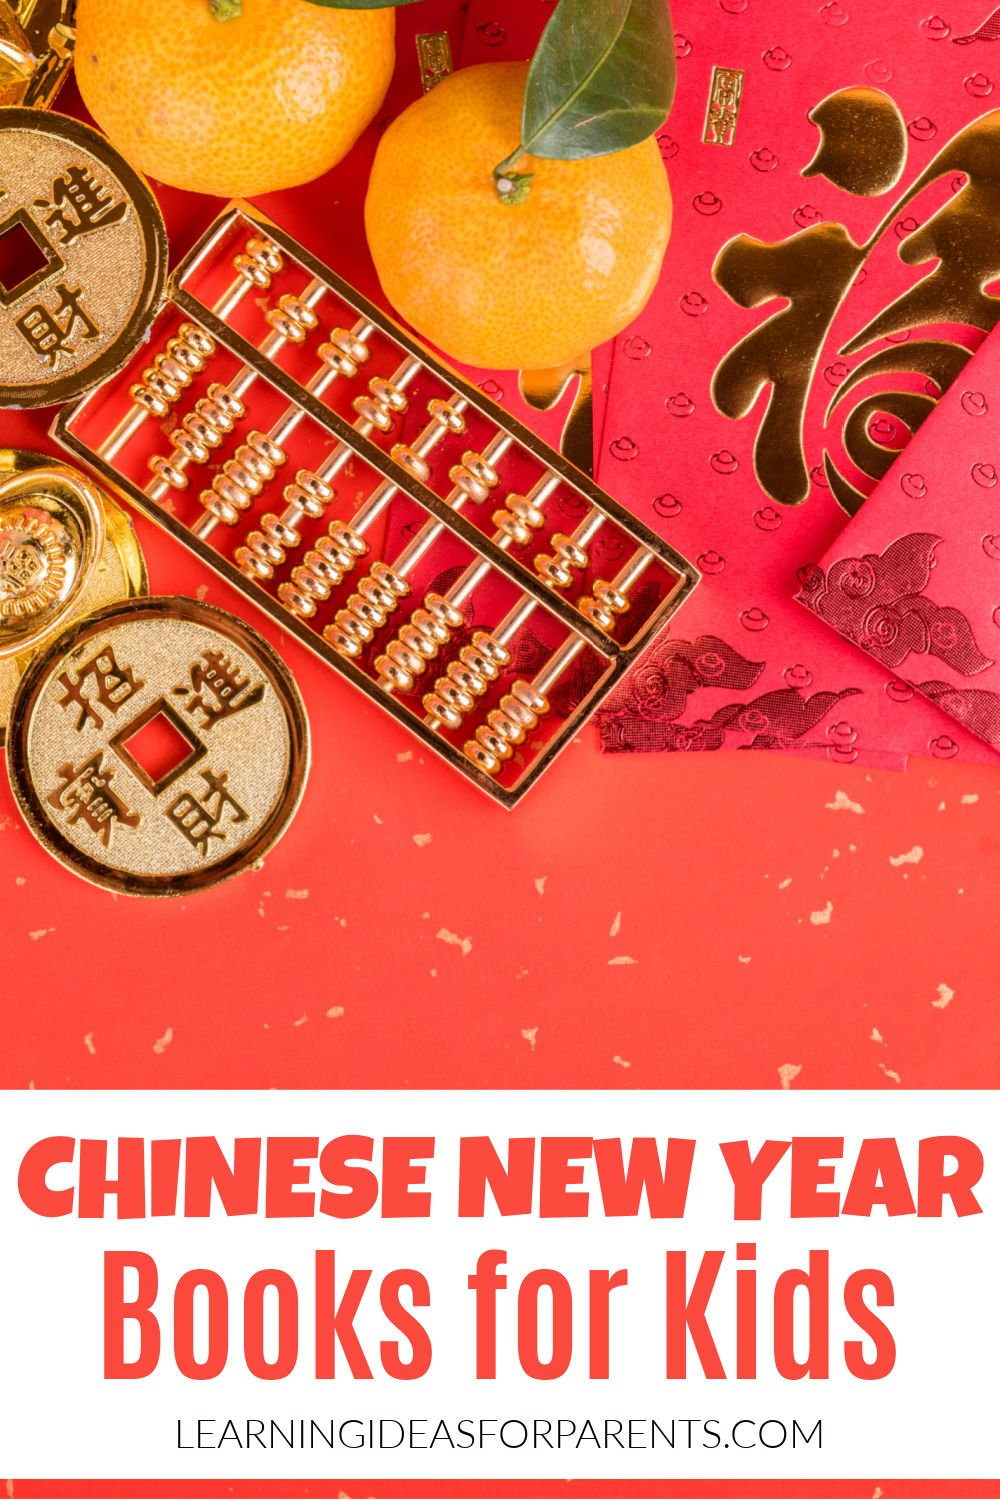 Fun list of Chinese New Year books for kids of all ages.